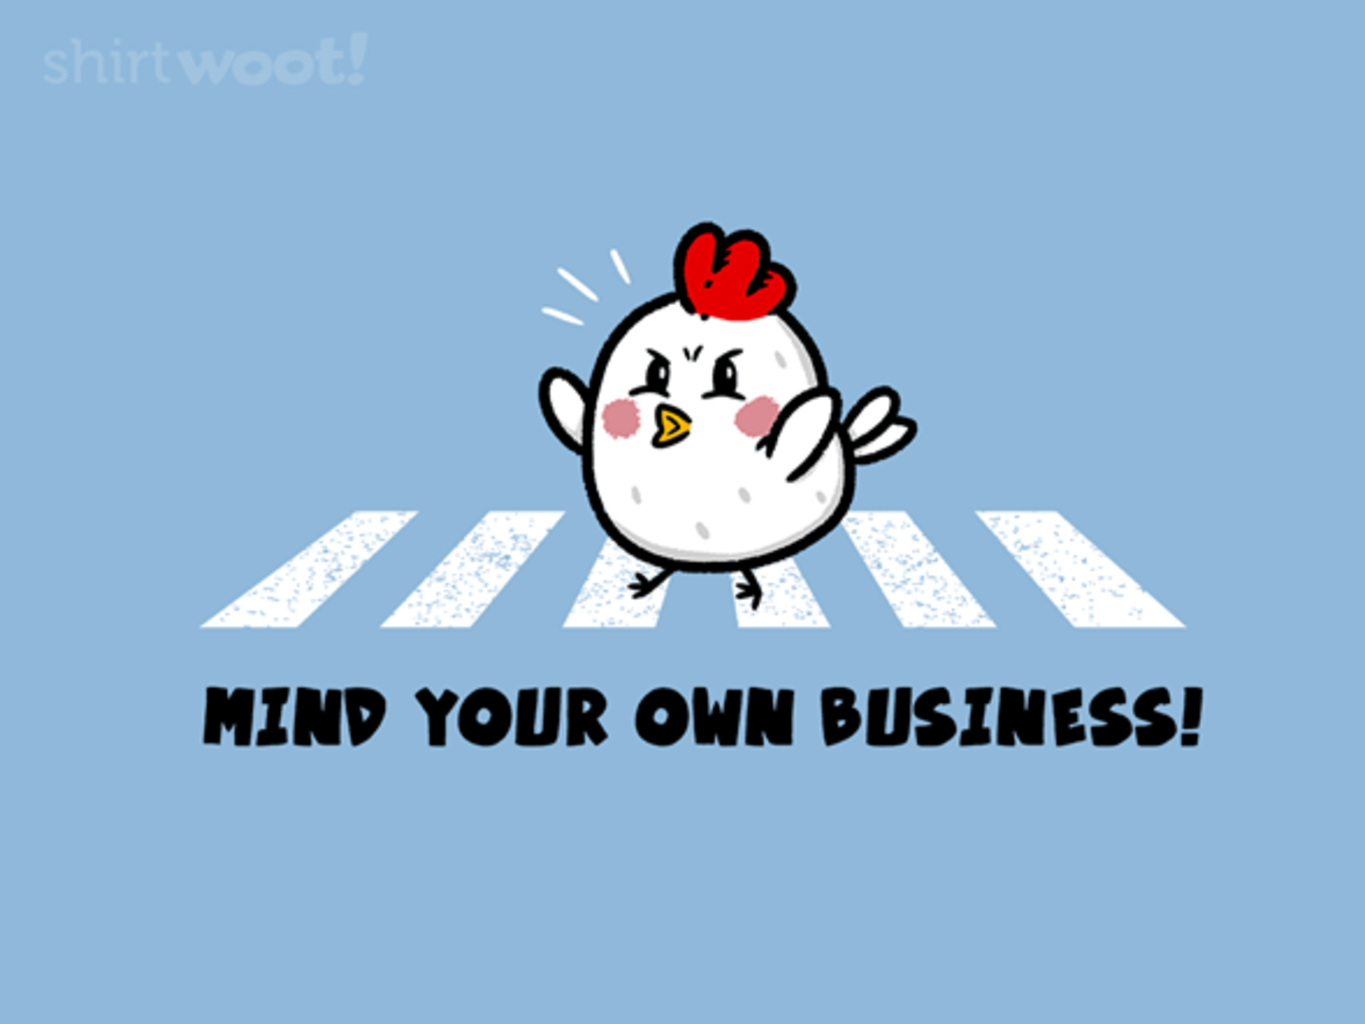 Woot!: Why Did the Chicken...